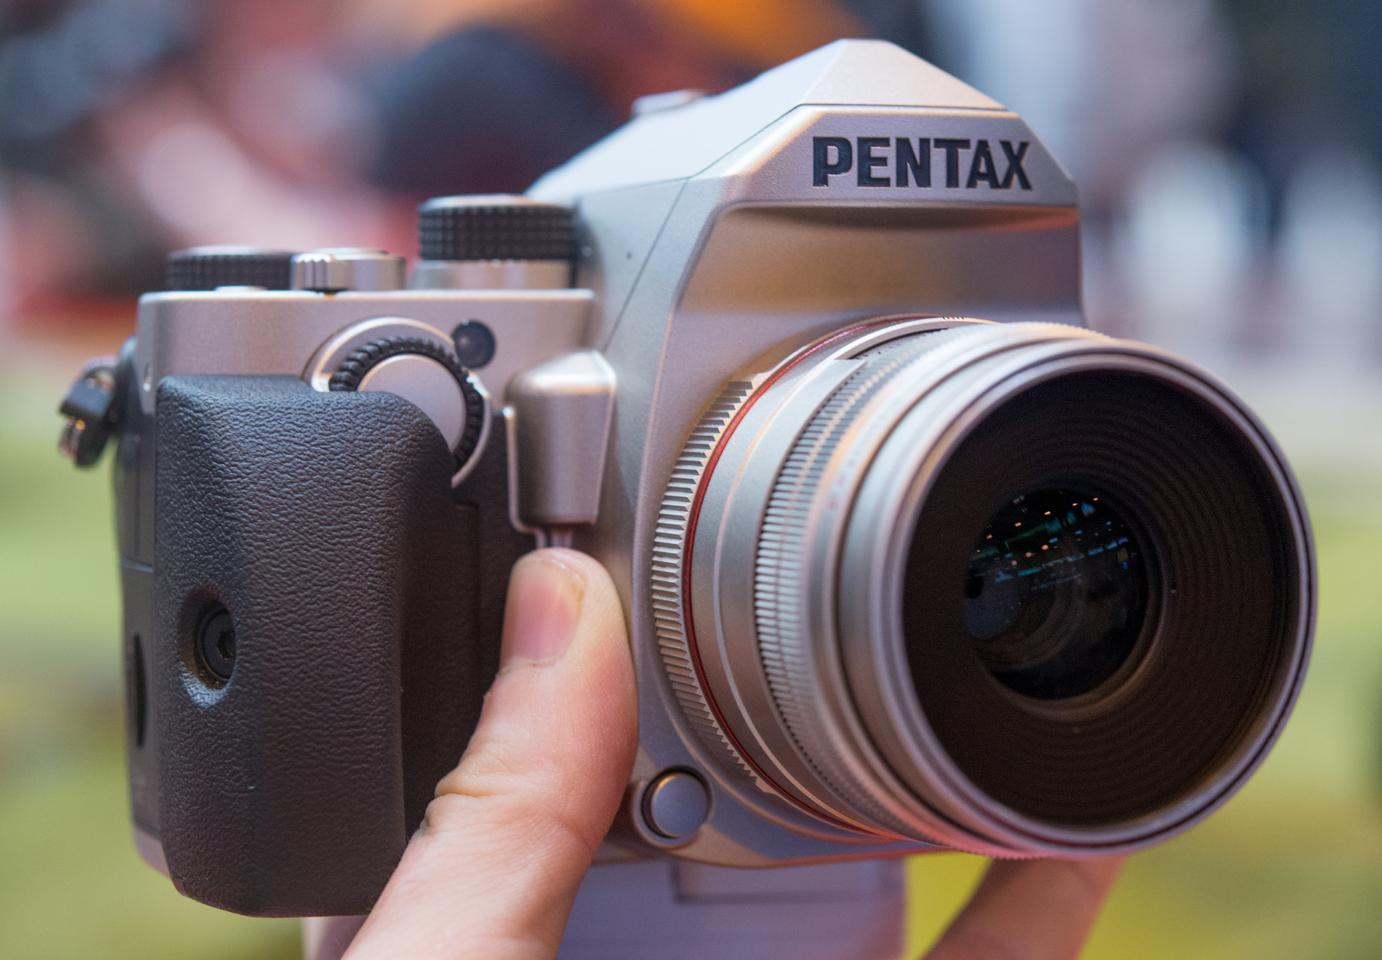 The Pentax KP is a compact DSLR which boasts sky-high ISO settings and built-in 5-axis image stabilization